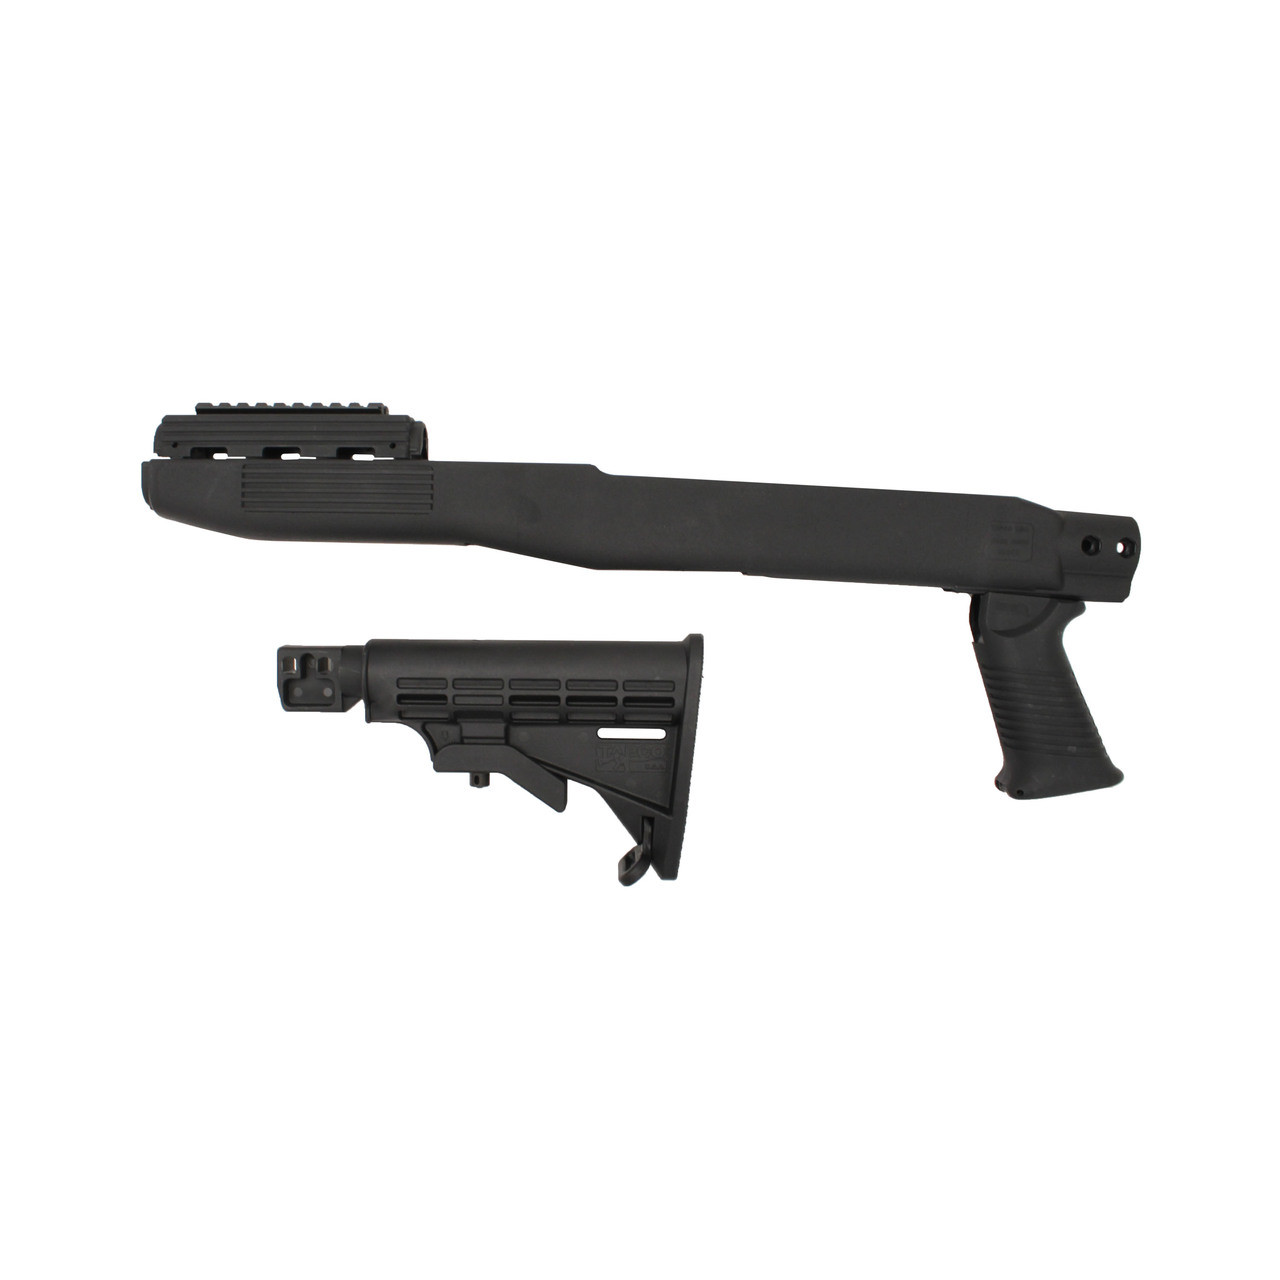 TAPCO FUSION RIFLE SYSTEM SKS BLK